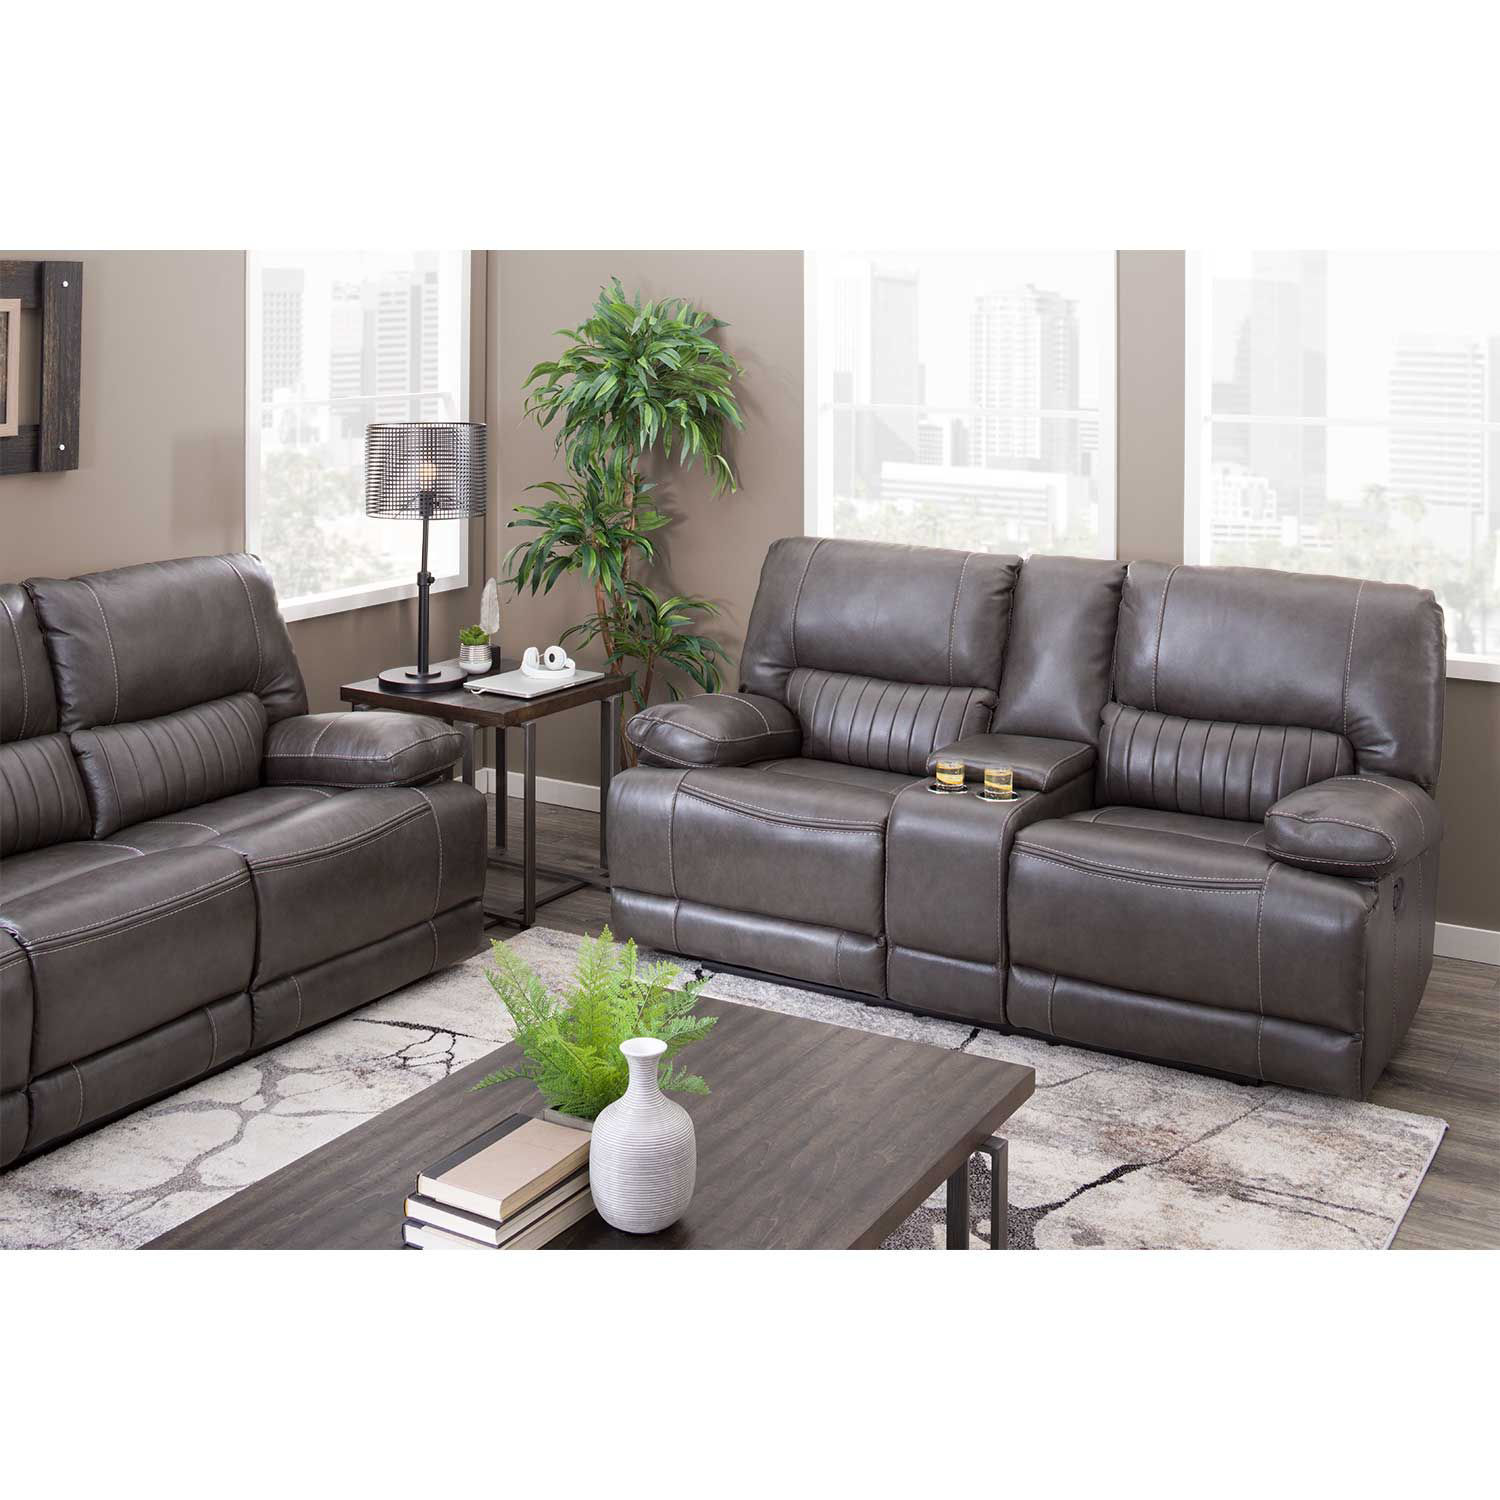 Picture of Rigby Gray Leather Recline Sofa